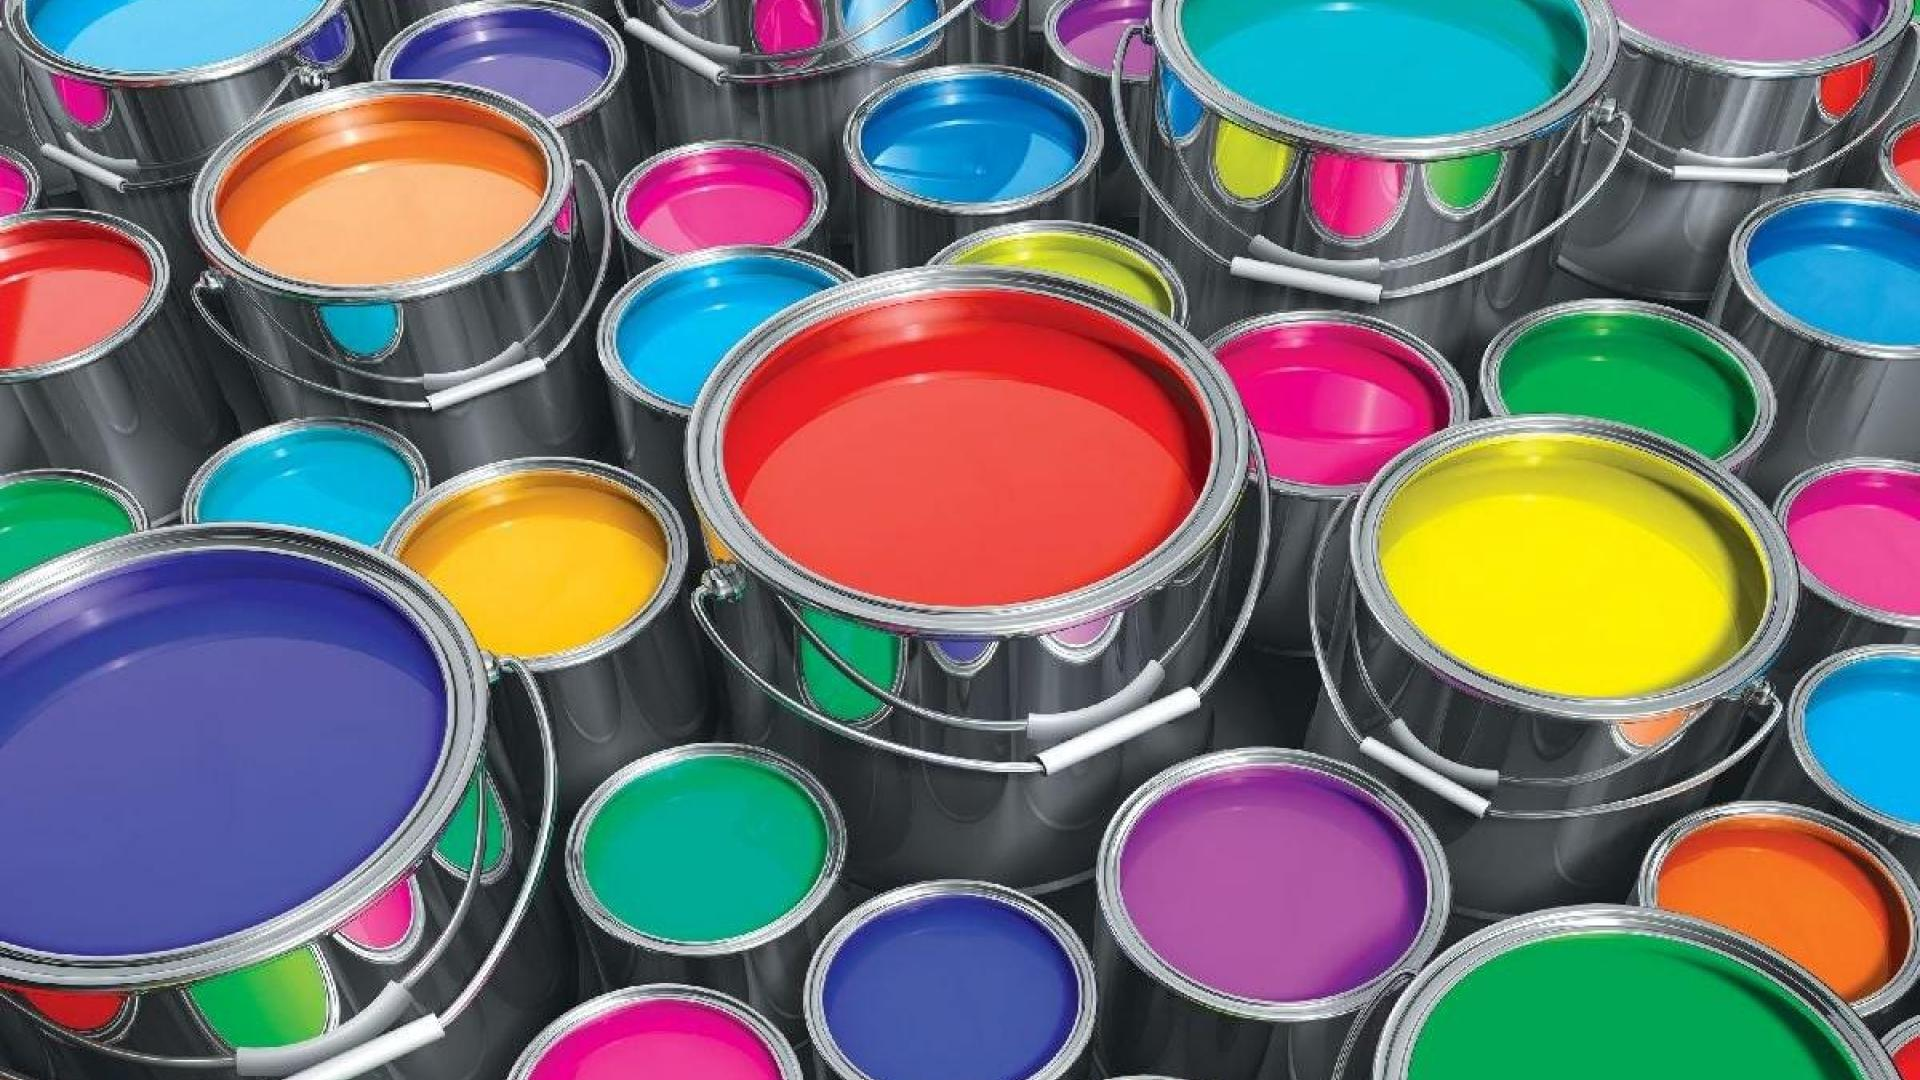 Know More About Paint Selection